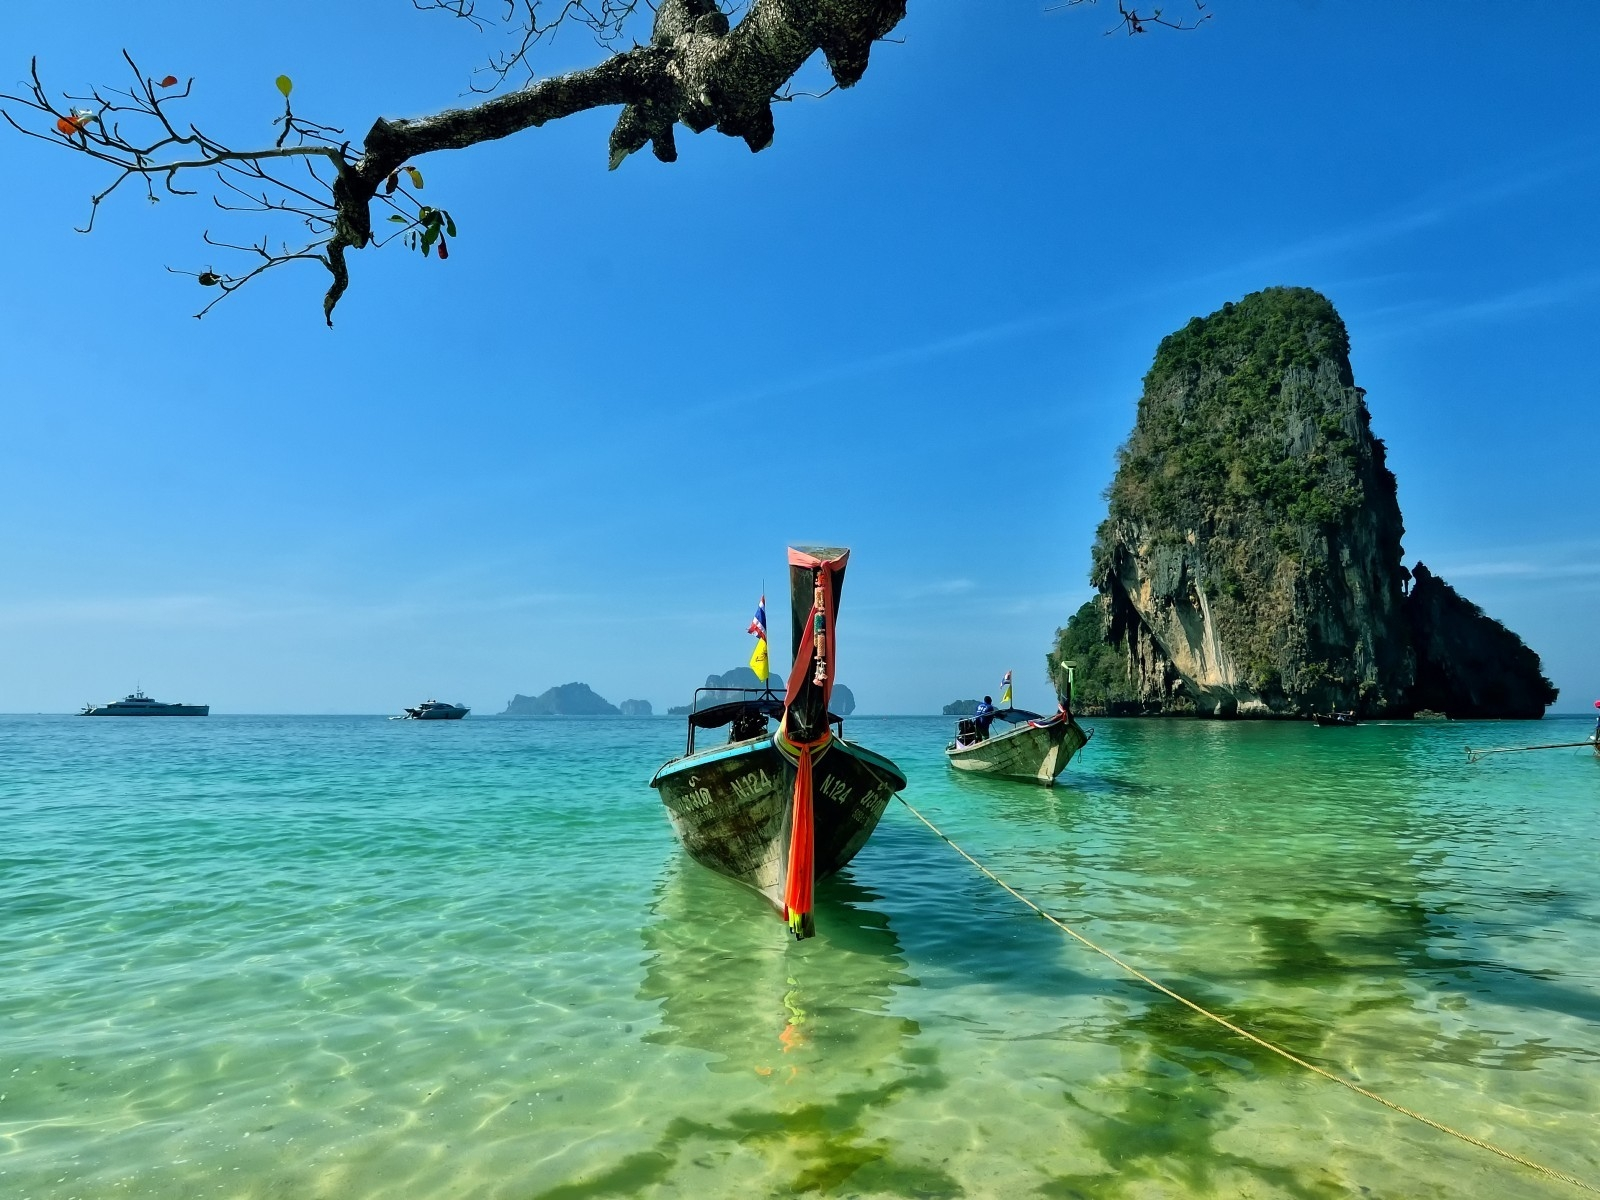 Railay Beach Thailand for 1600 x 1200 resolution